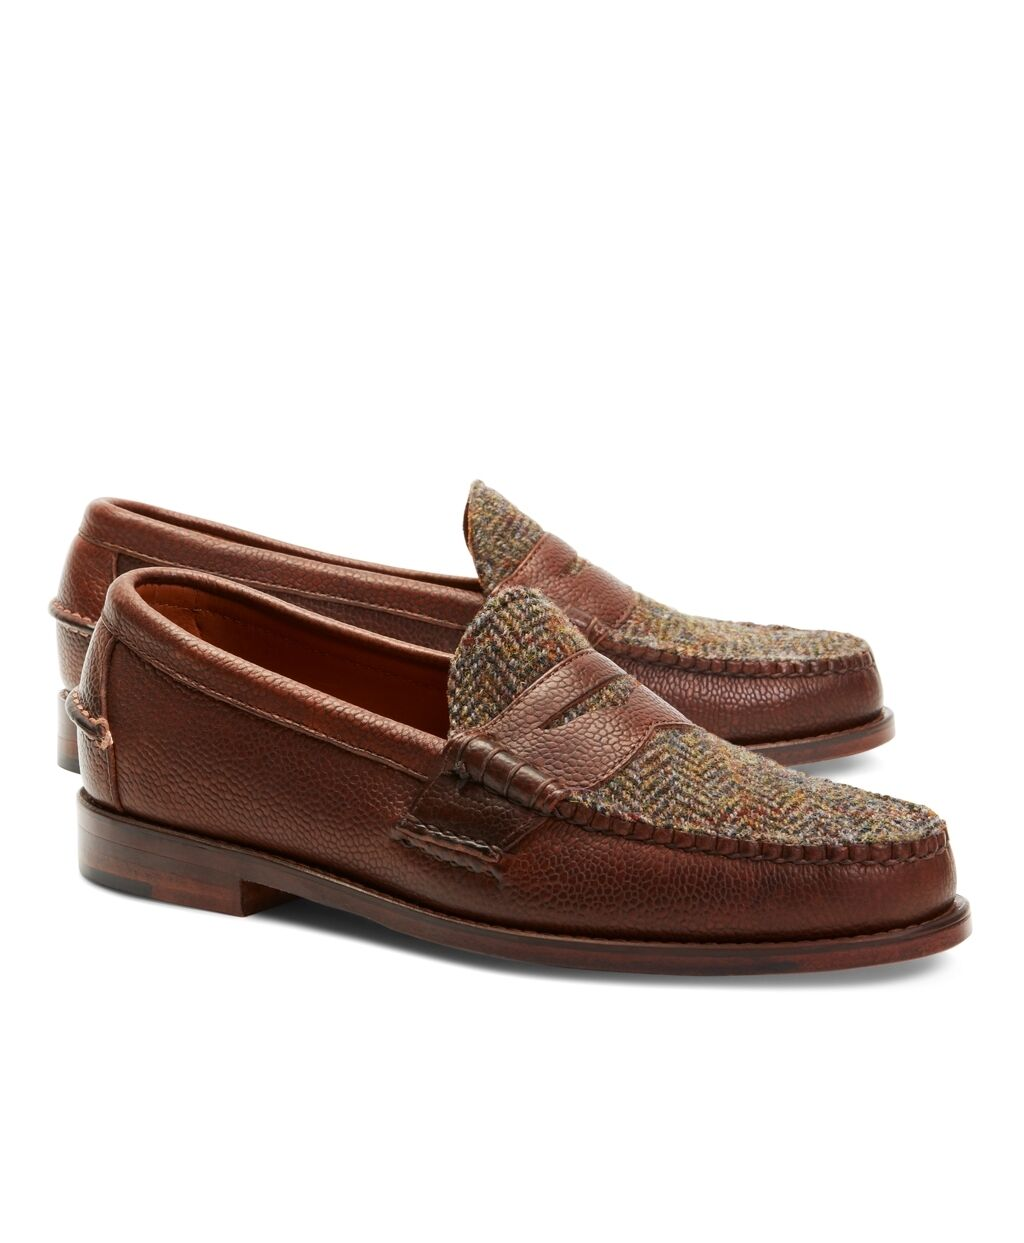 3e0e951d5662f RANCOURT   CO for BROOKS BROTHERS BROTHERS BROTHERS Men s Wool Plaid Penny  Loafers - Made in USA b3f1d0